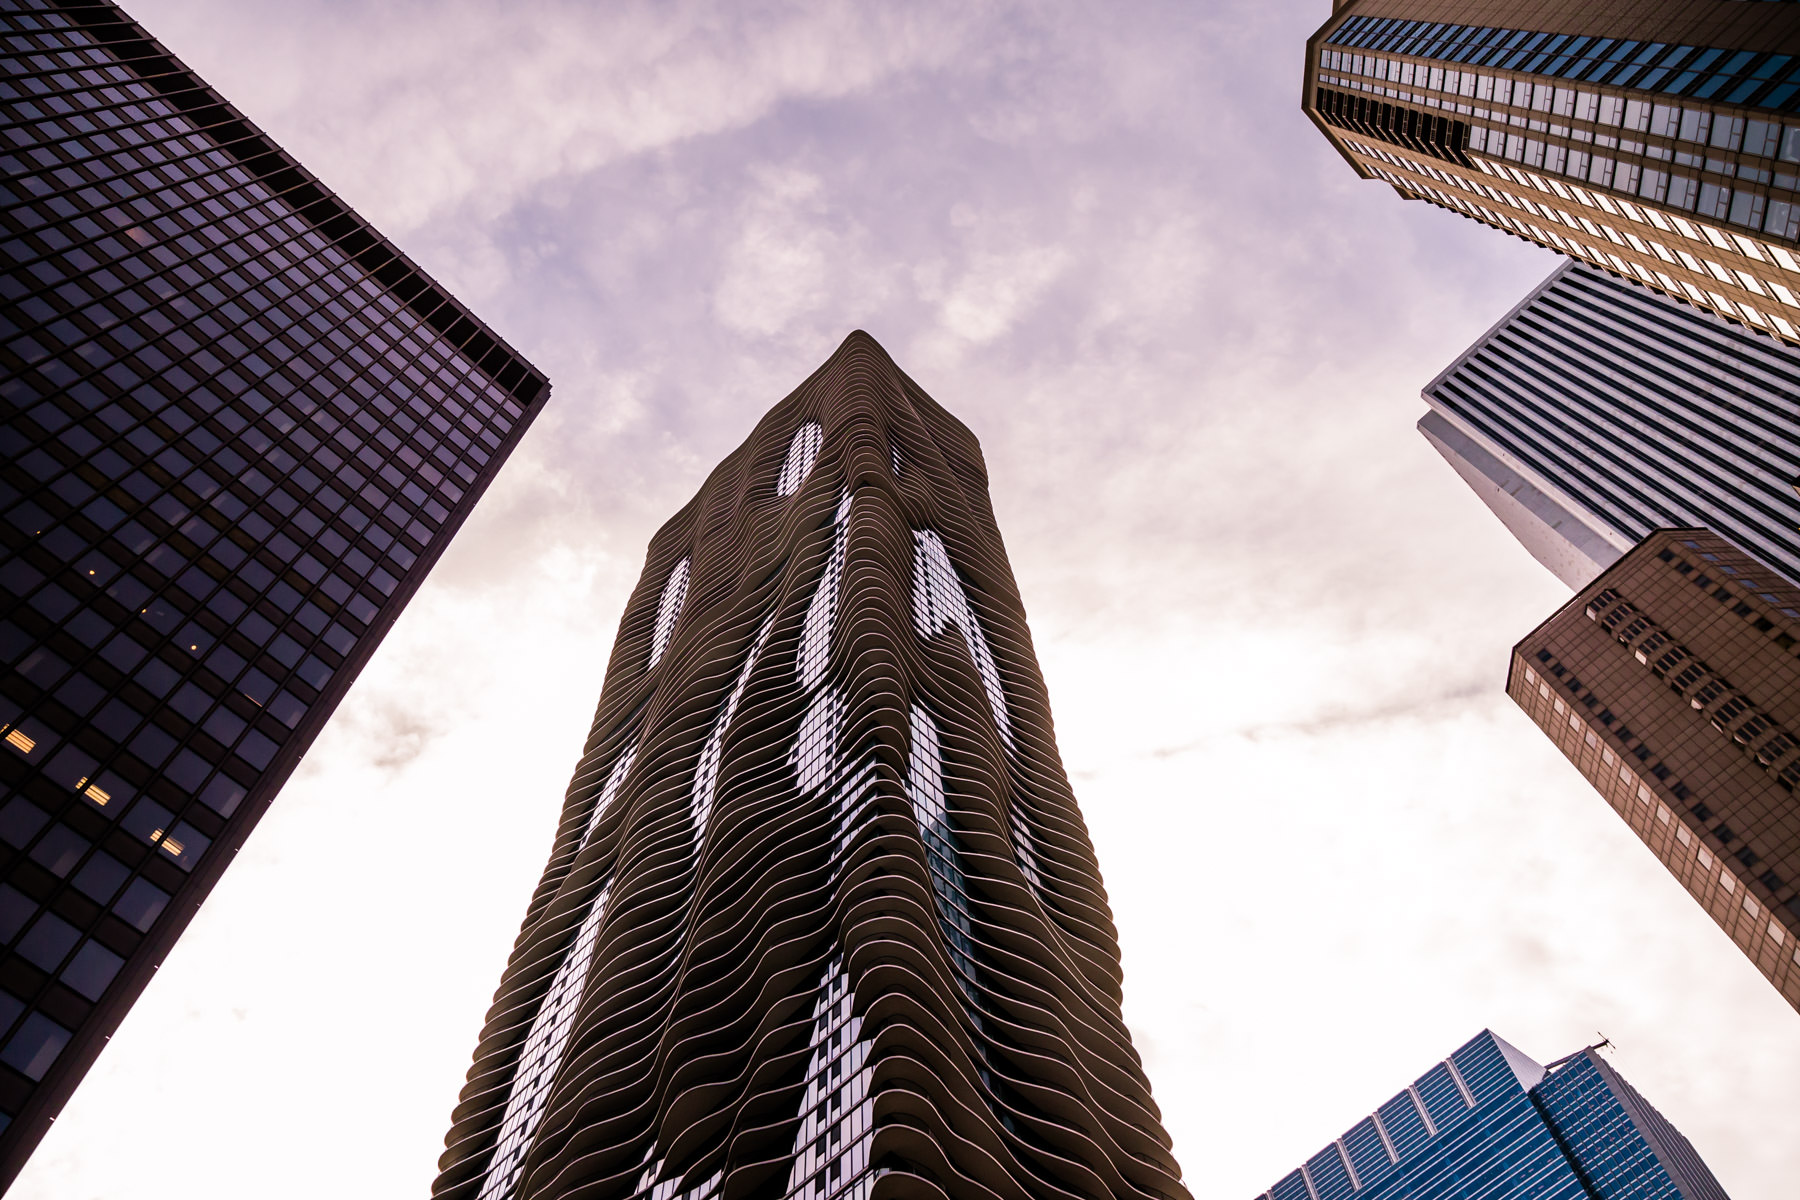 Aqua, an 82-story mixed-use skyscraper designed by Jeanne Gang, takes its place amongst the Chicago skyline.